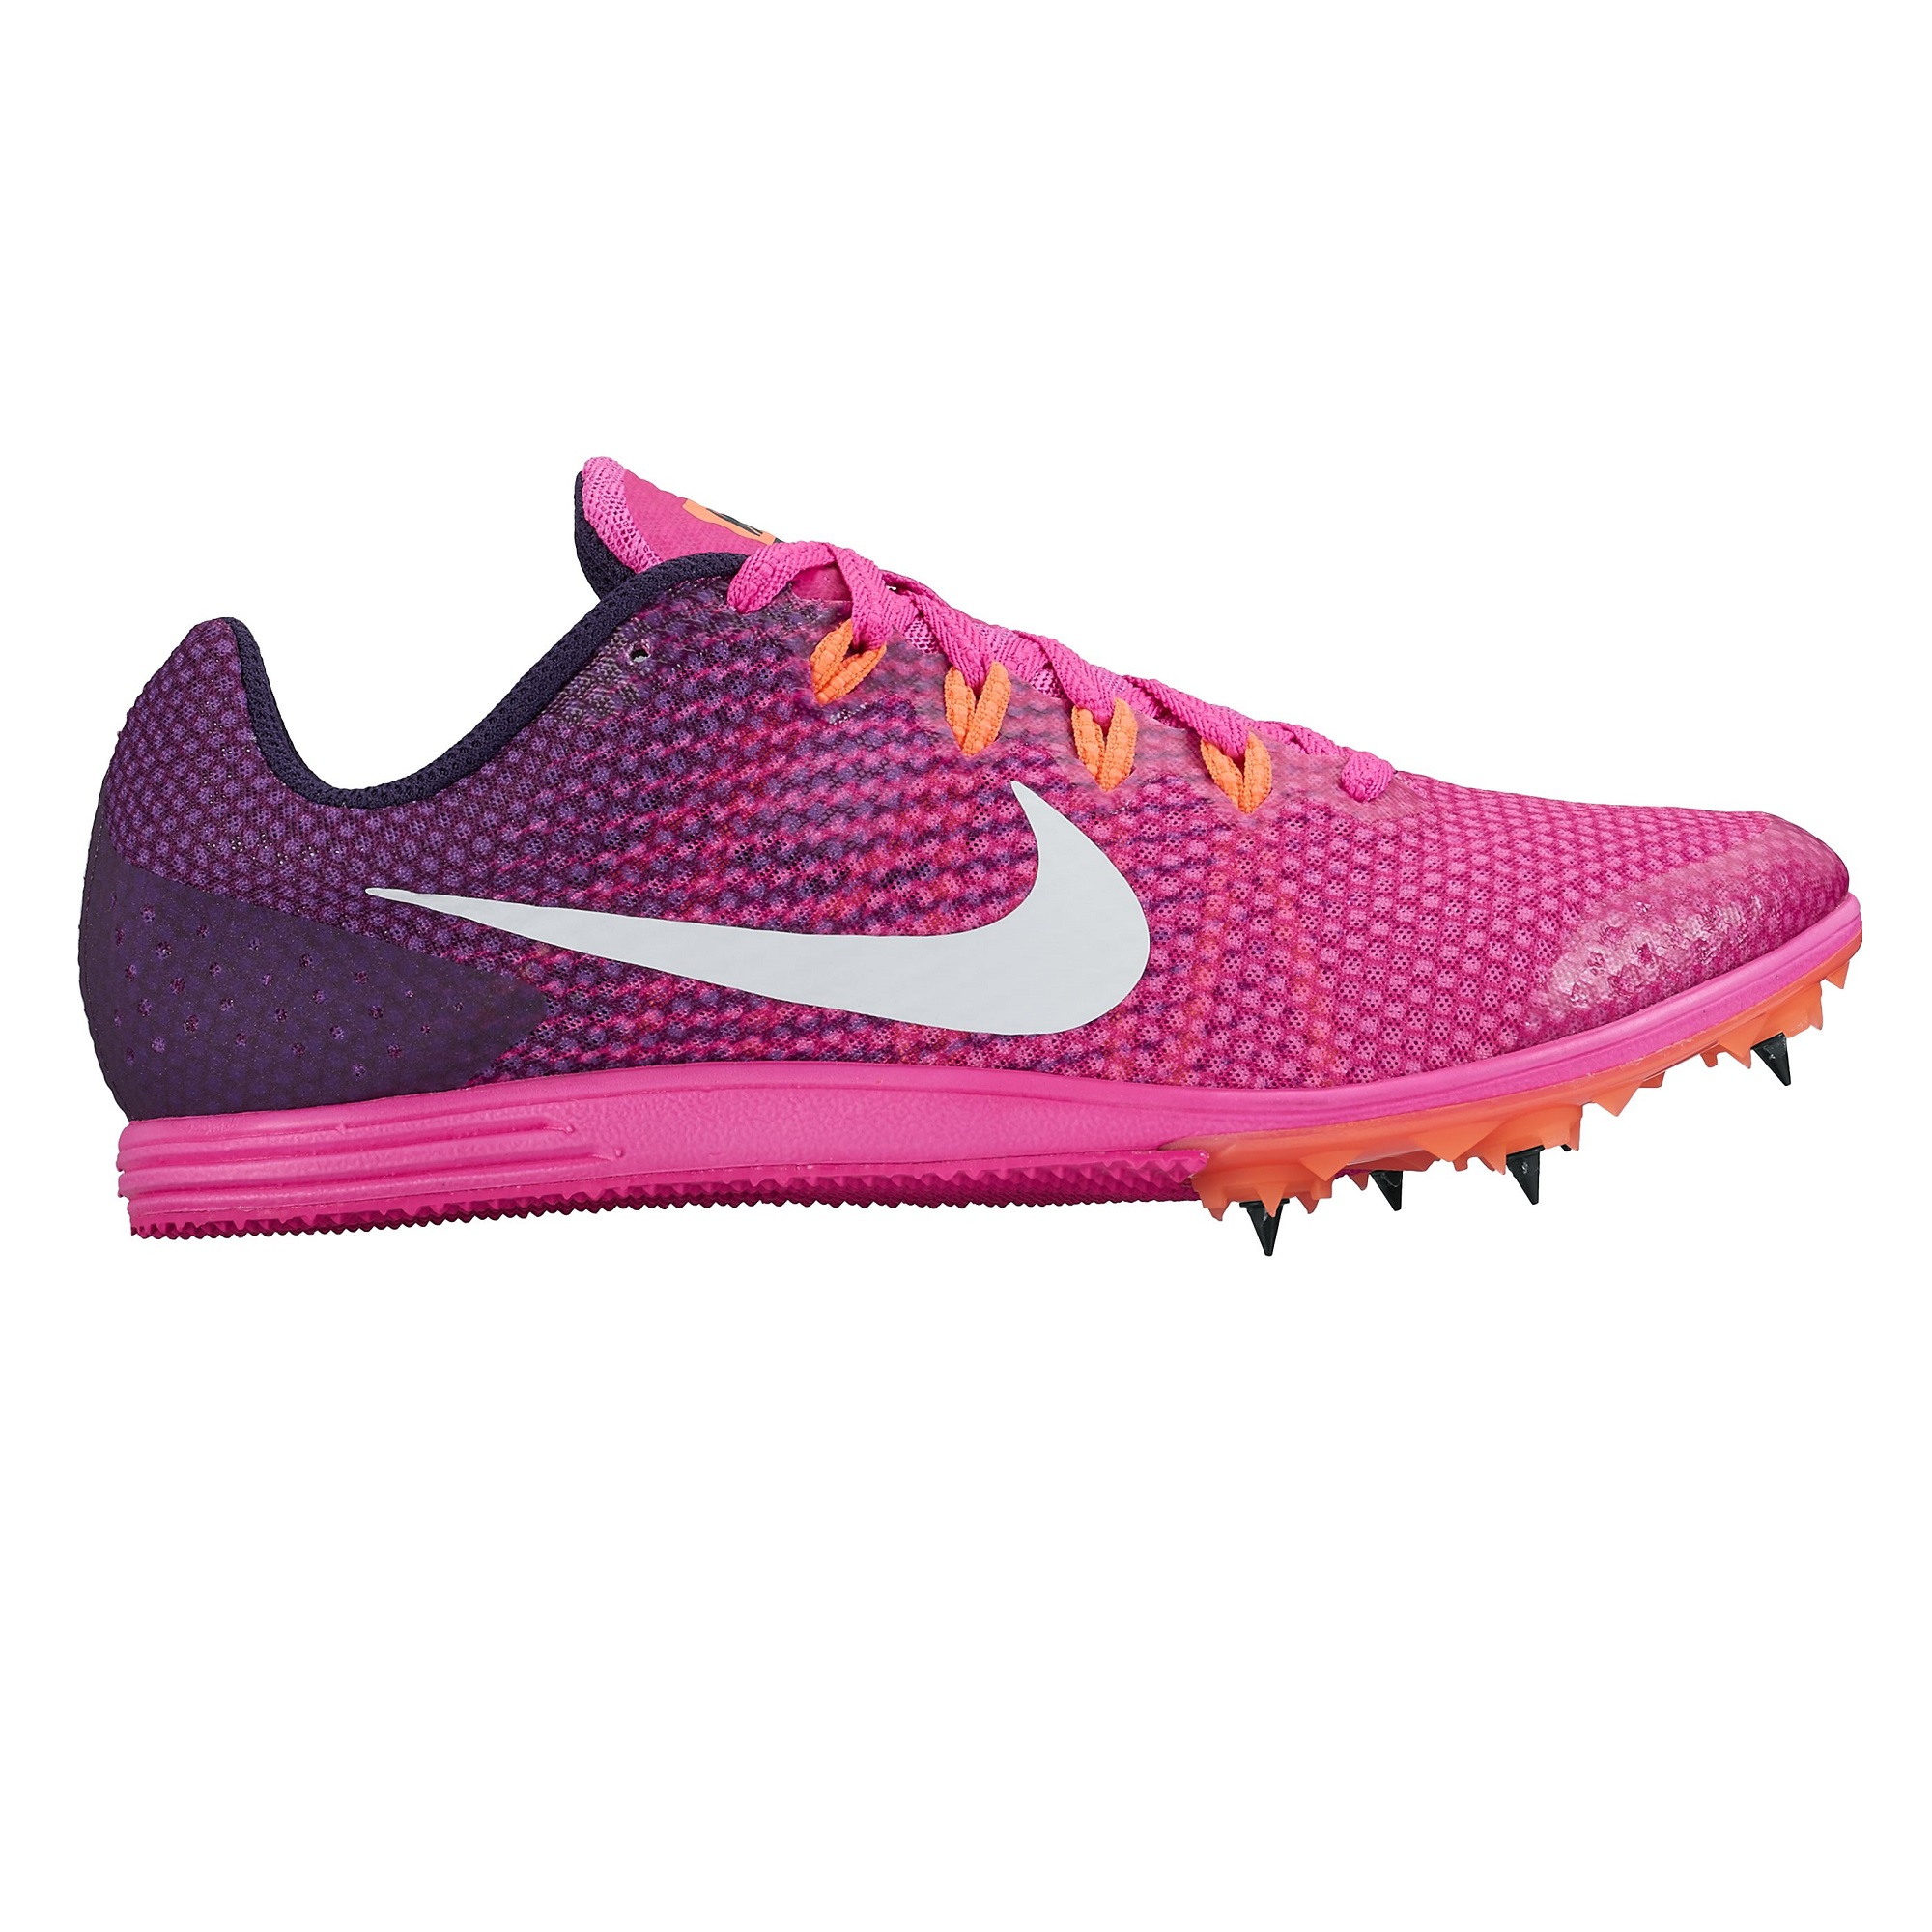 fdf7db3ac96 Nike Zoom Rival D 9 Women s Running Spikes - Alton Sports